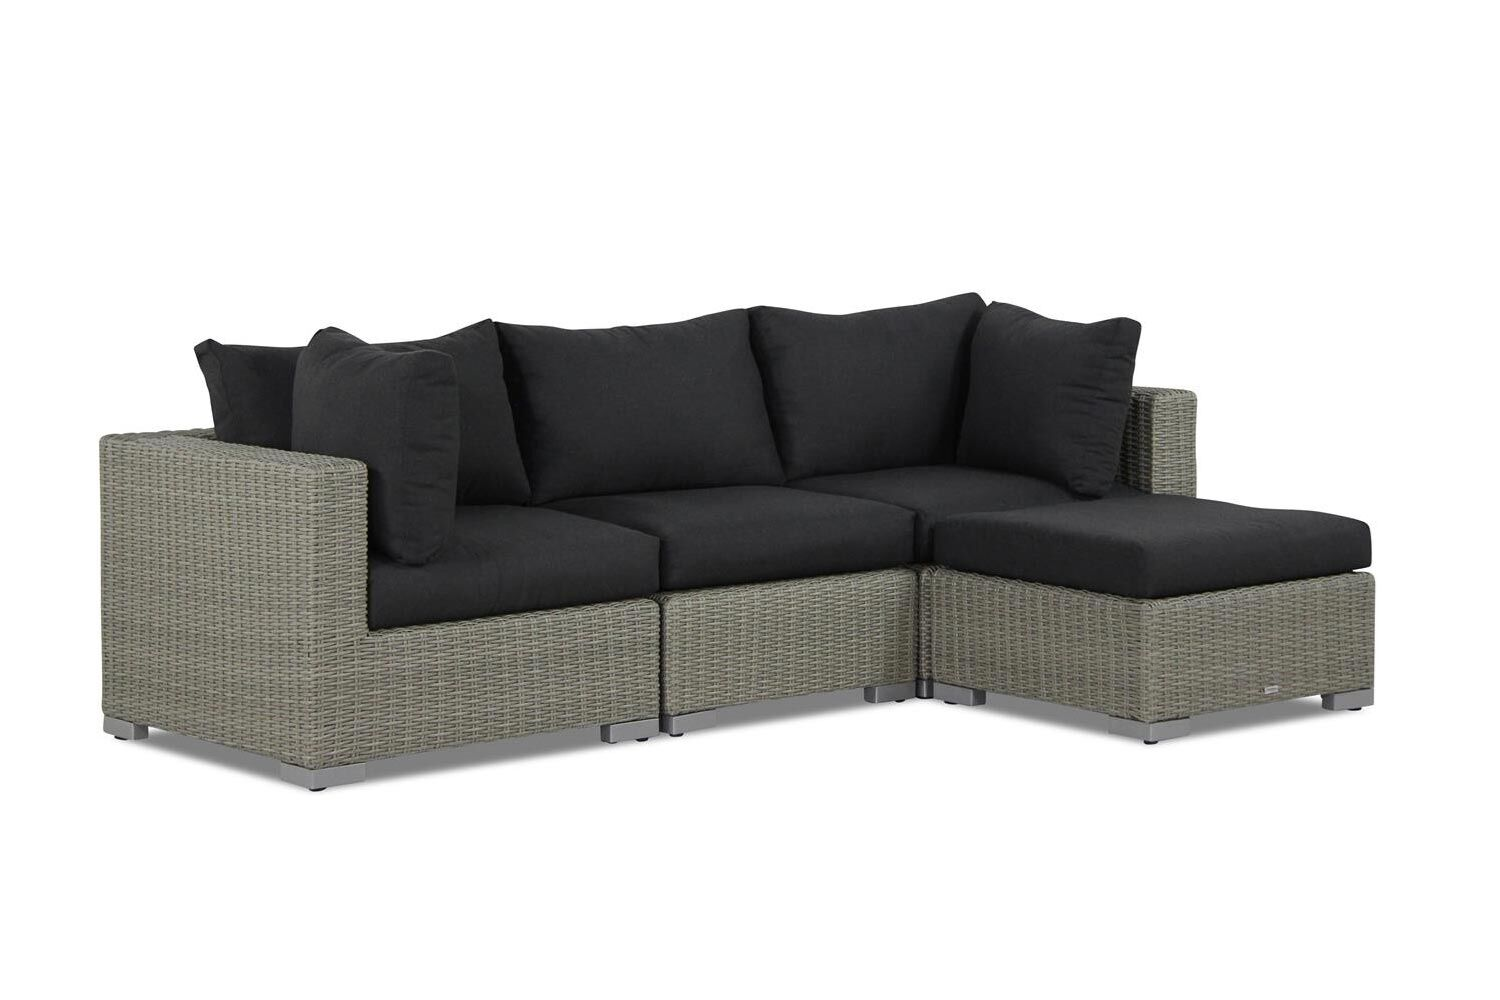 Garden Collections Toronto chaise longue loungeset 4-delig